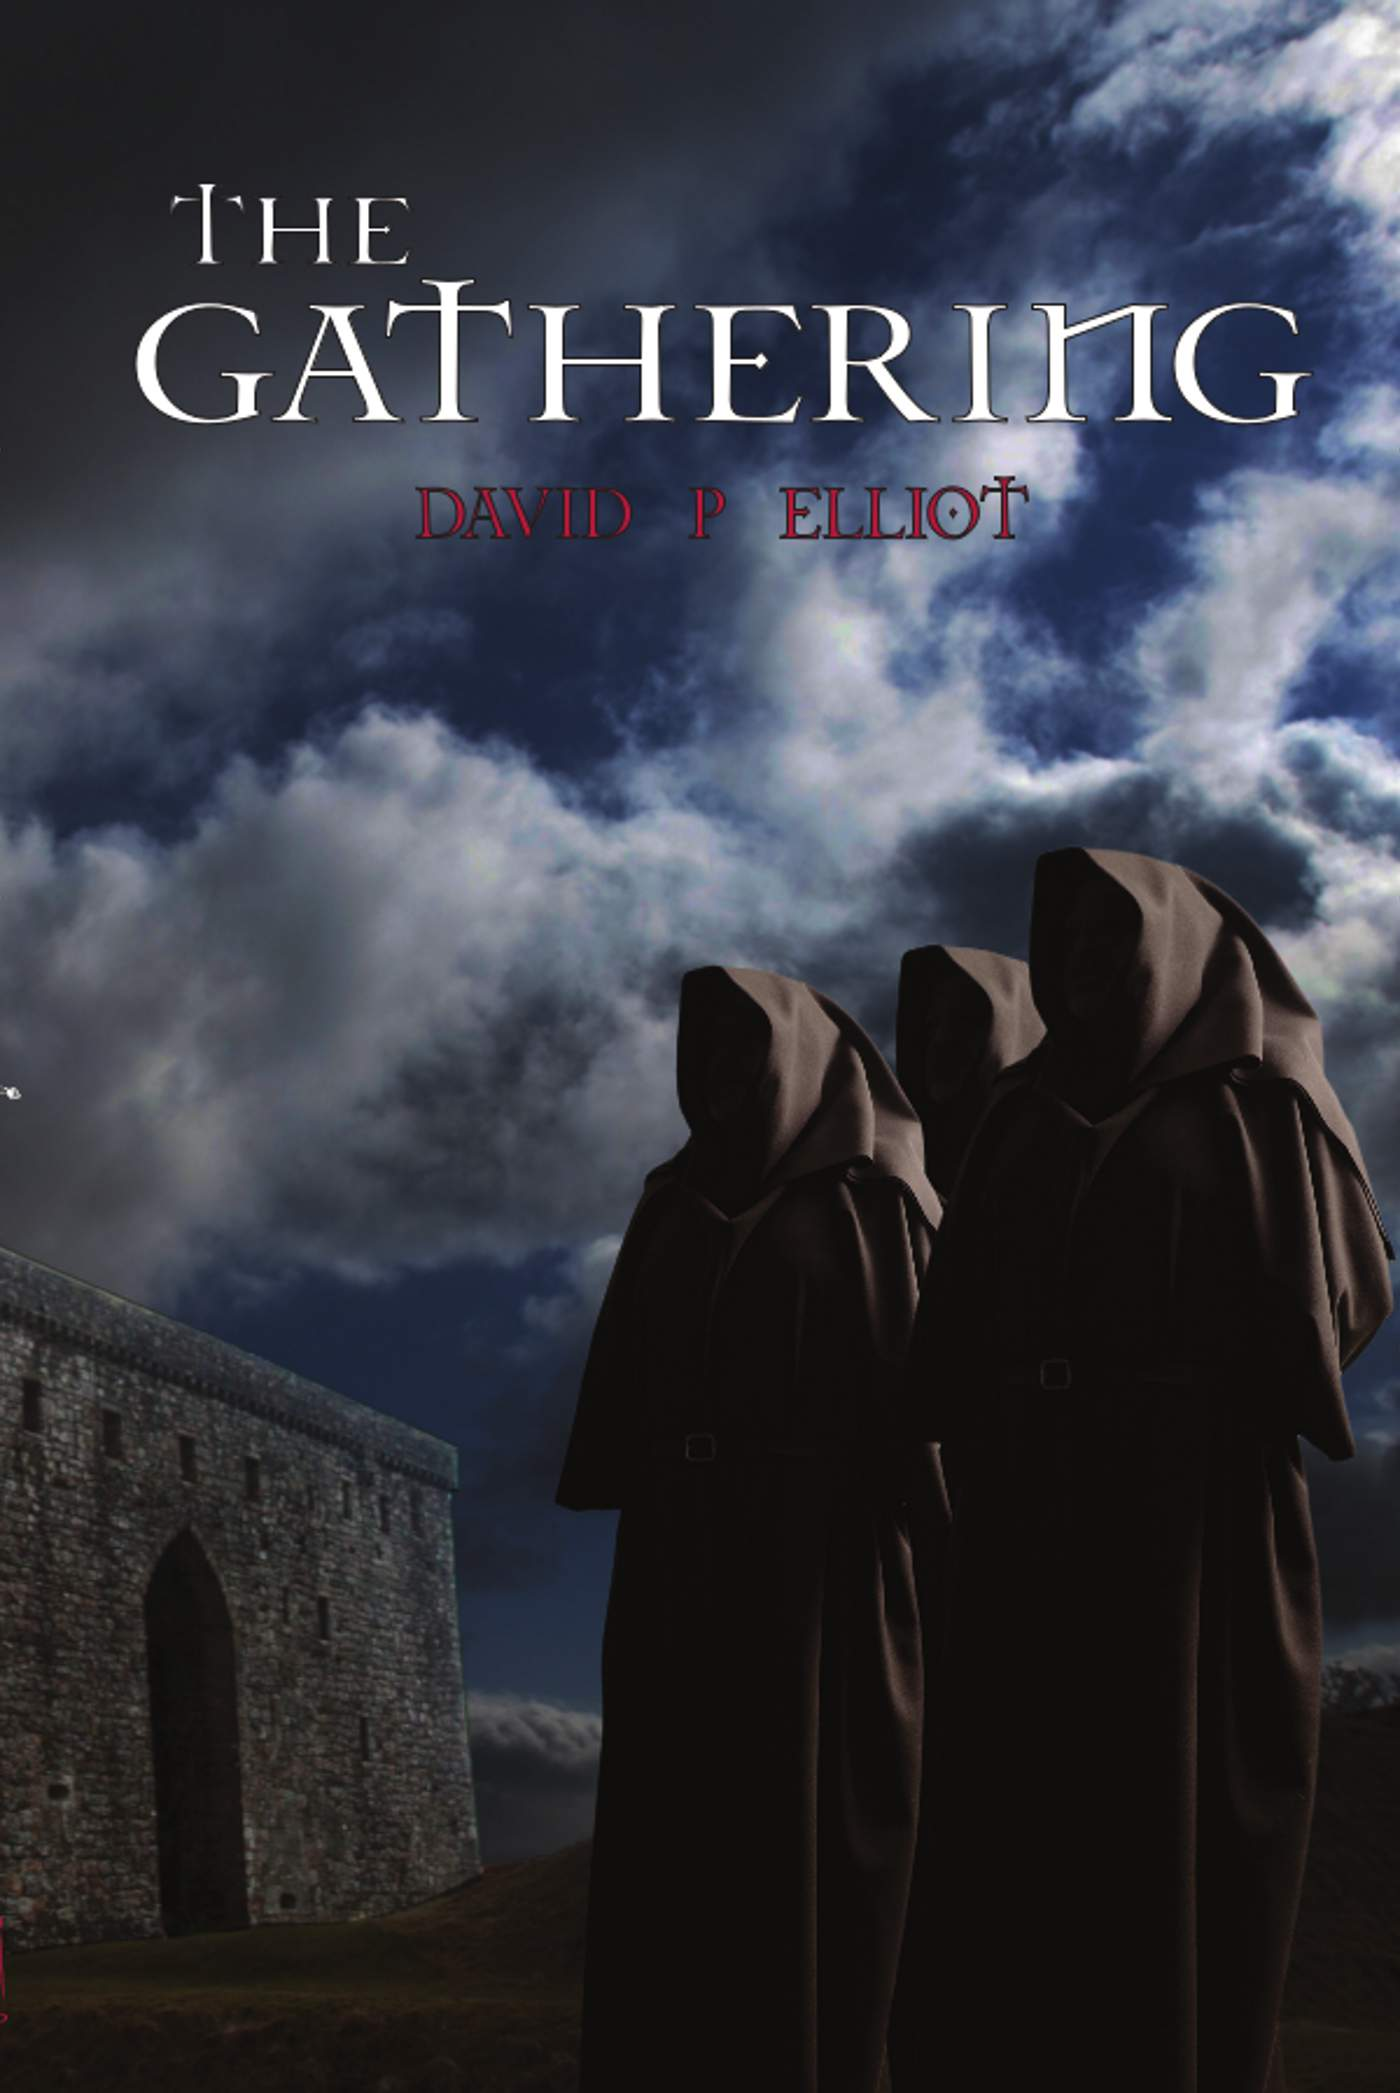 The Gathering by David P Elliot